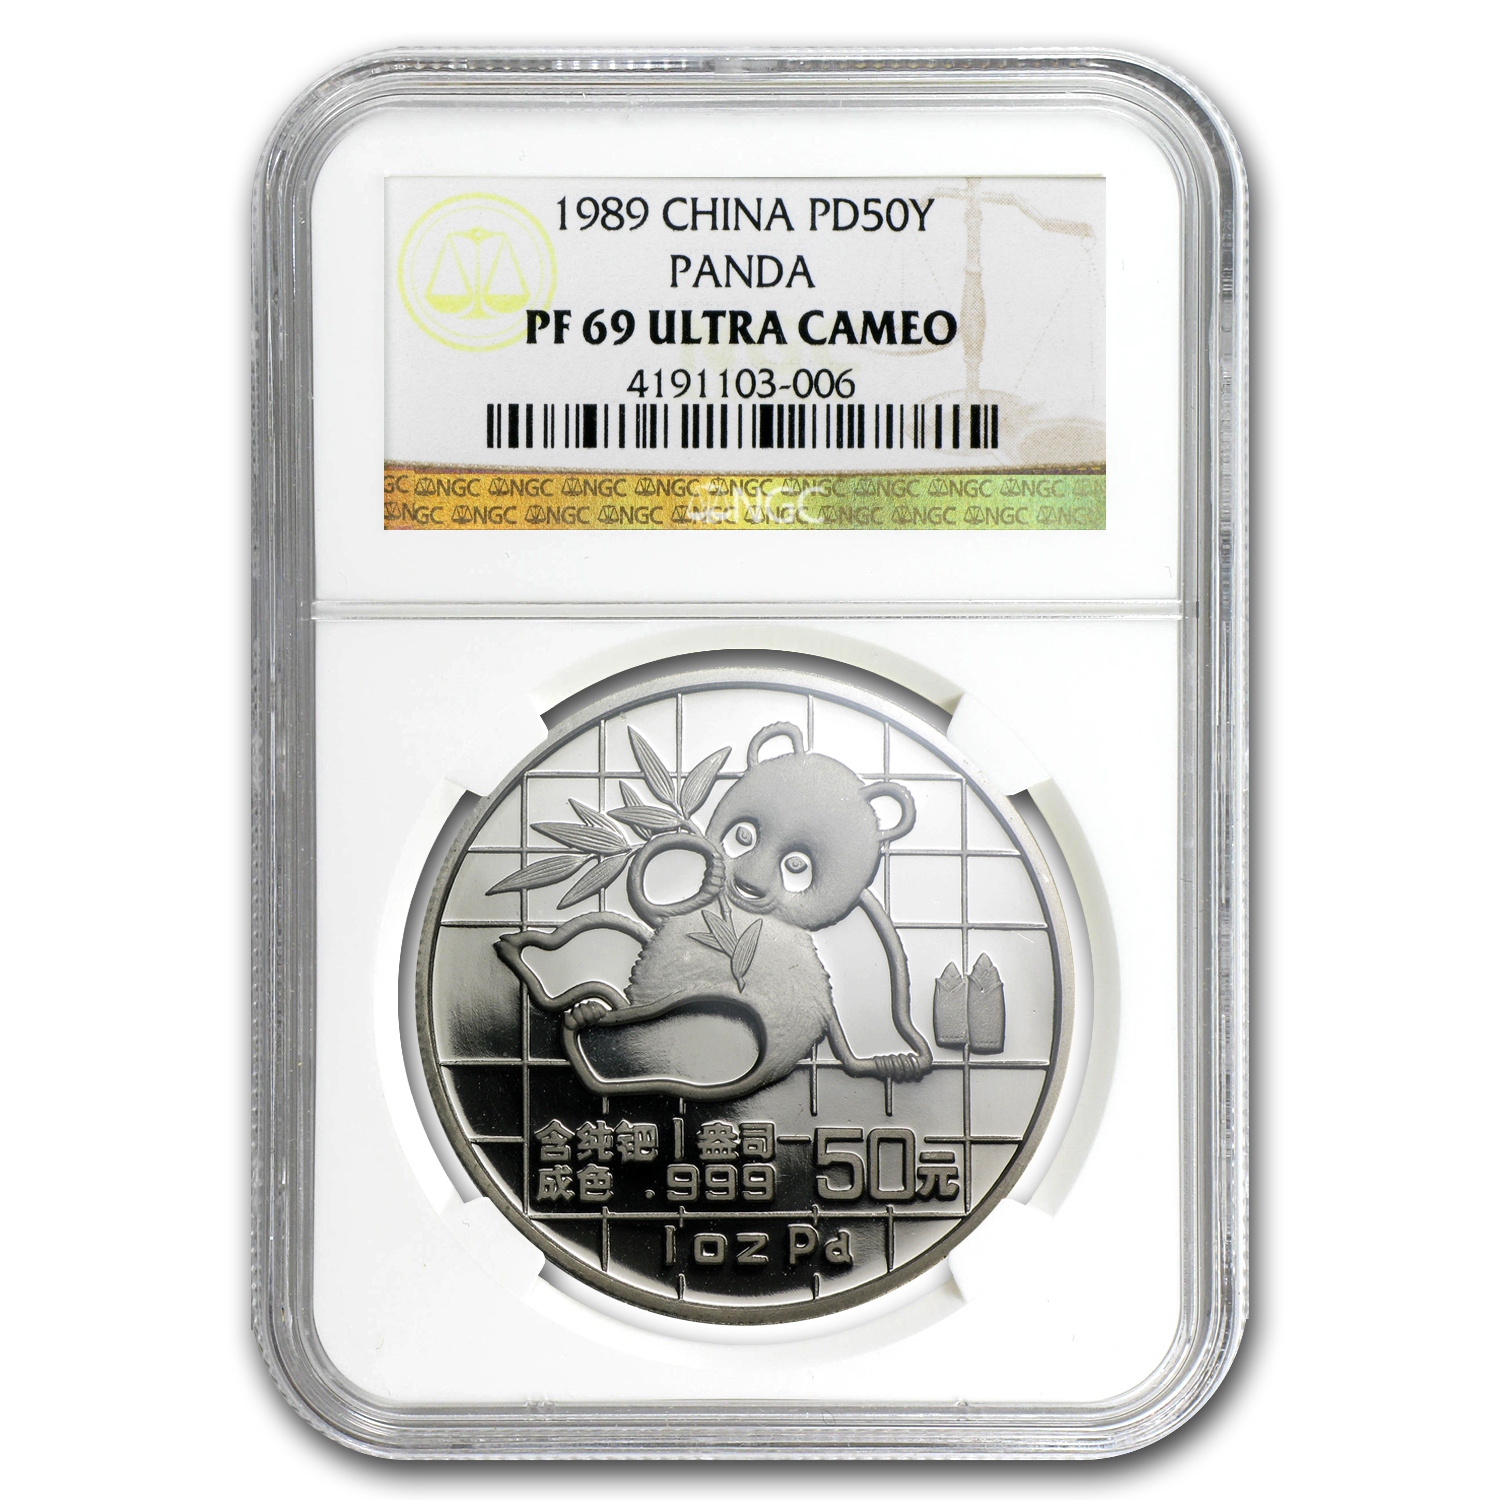 1989 China 1 oz Proof Palladium Panda PF-69 NGC